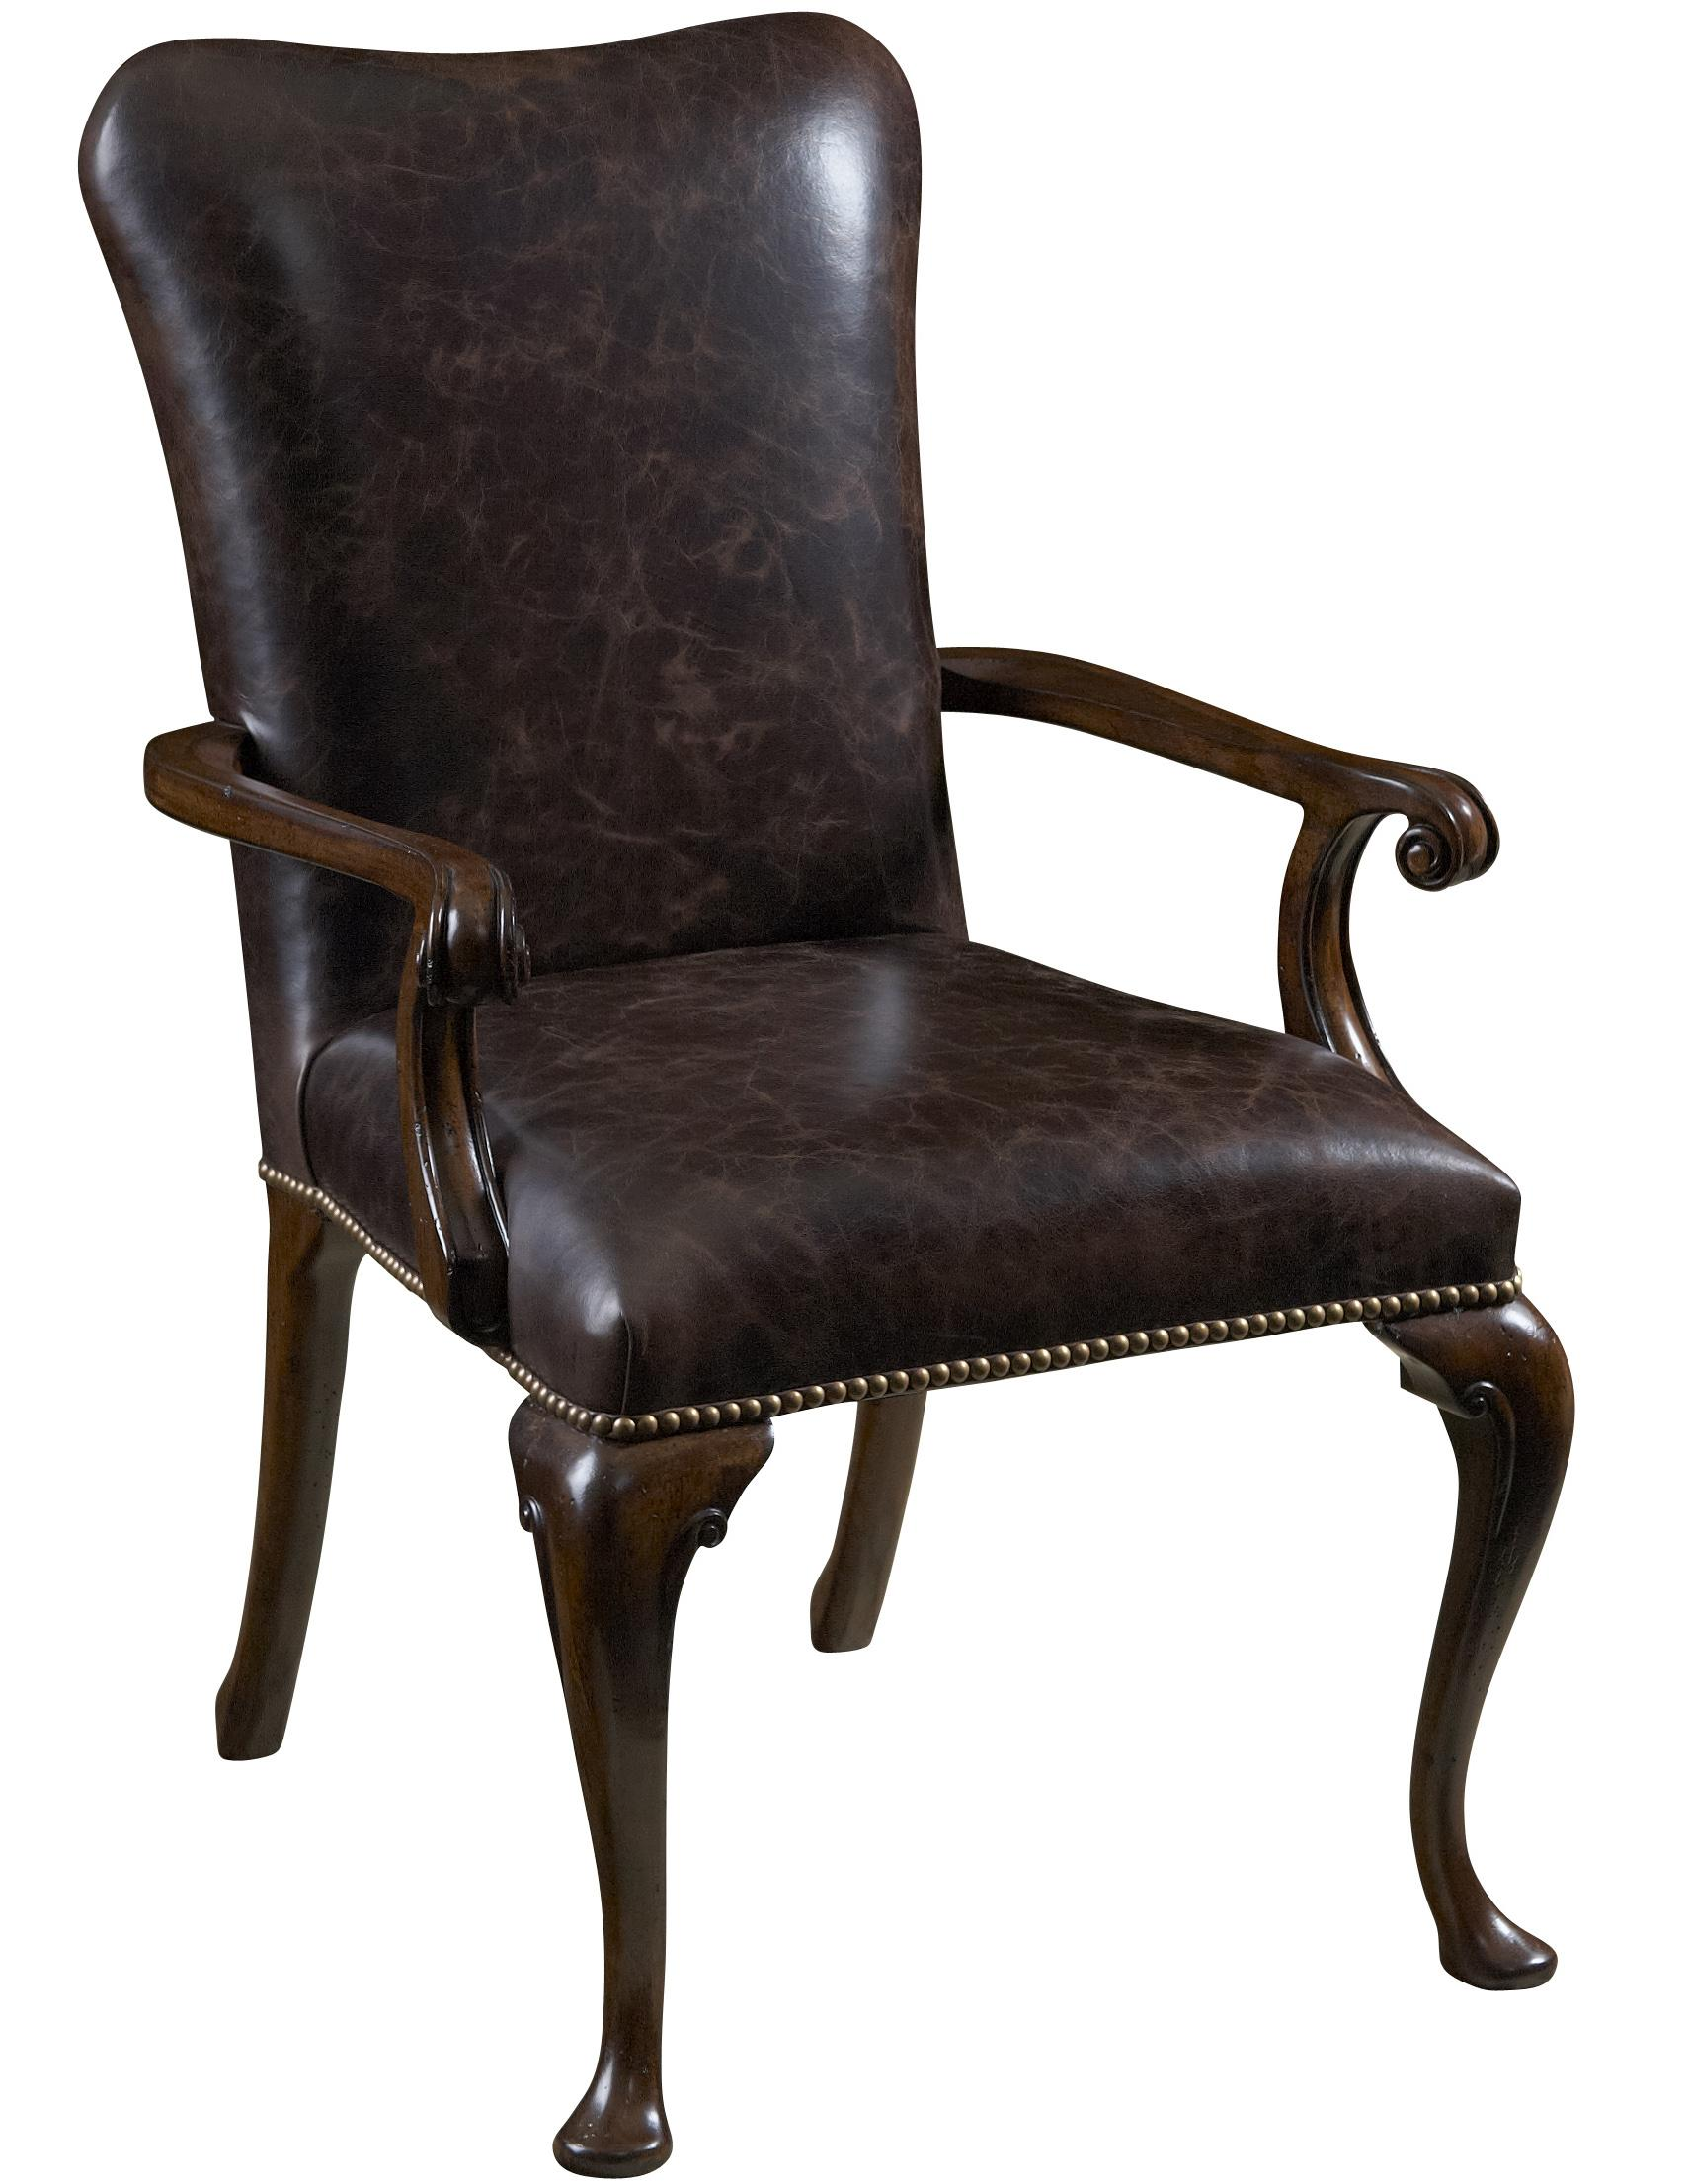 leather dining room chairs stool chair for sale philippines with arms home furniture design